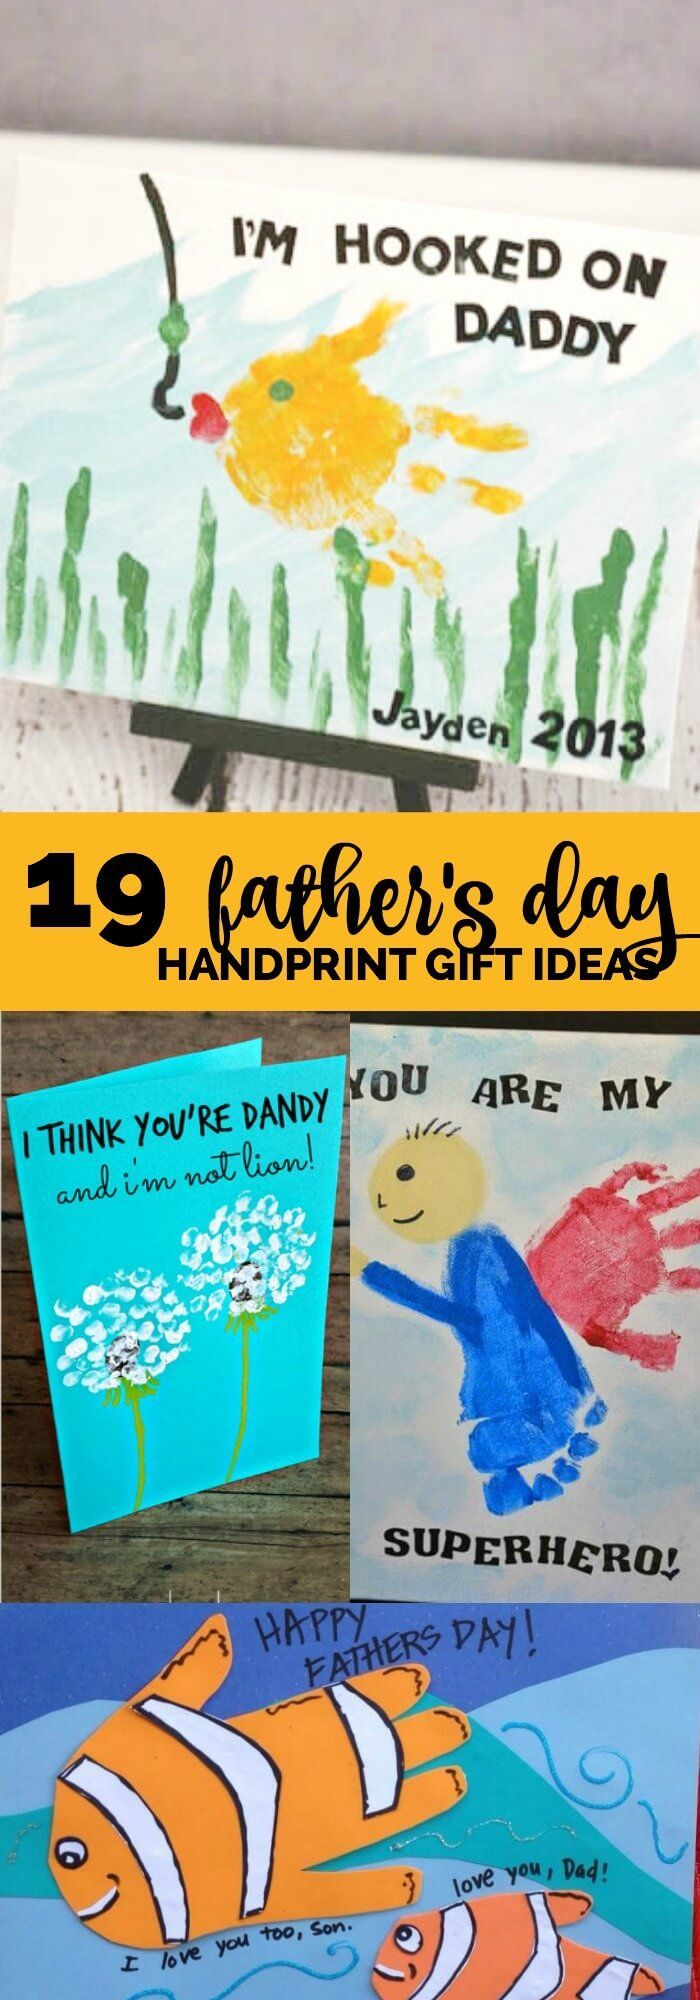 19 Father's Day Handprint Gift Ideas!